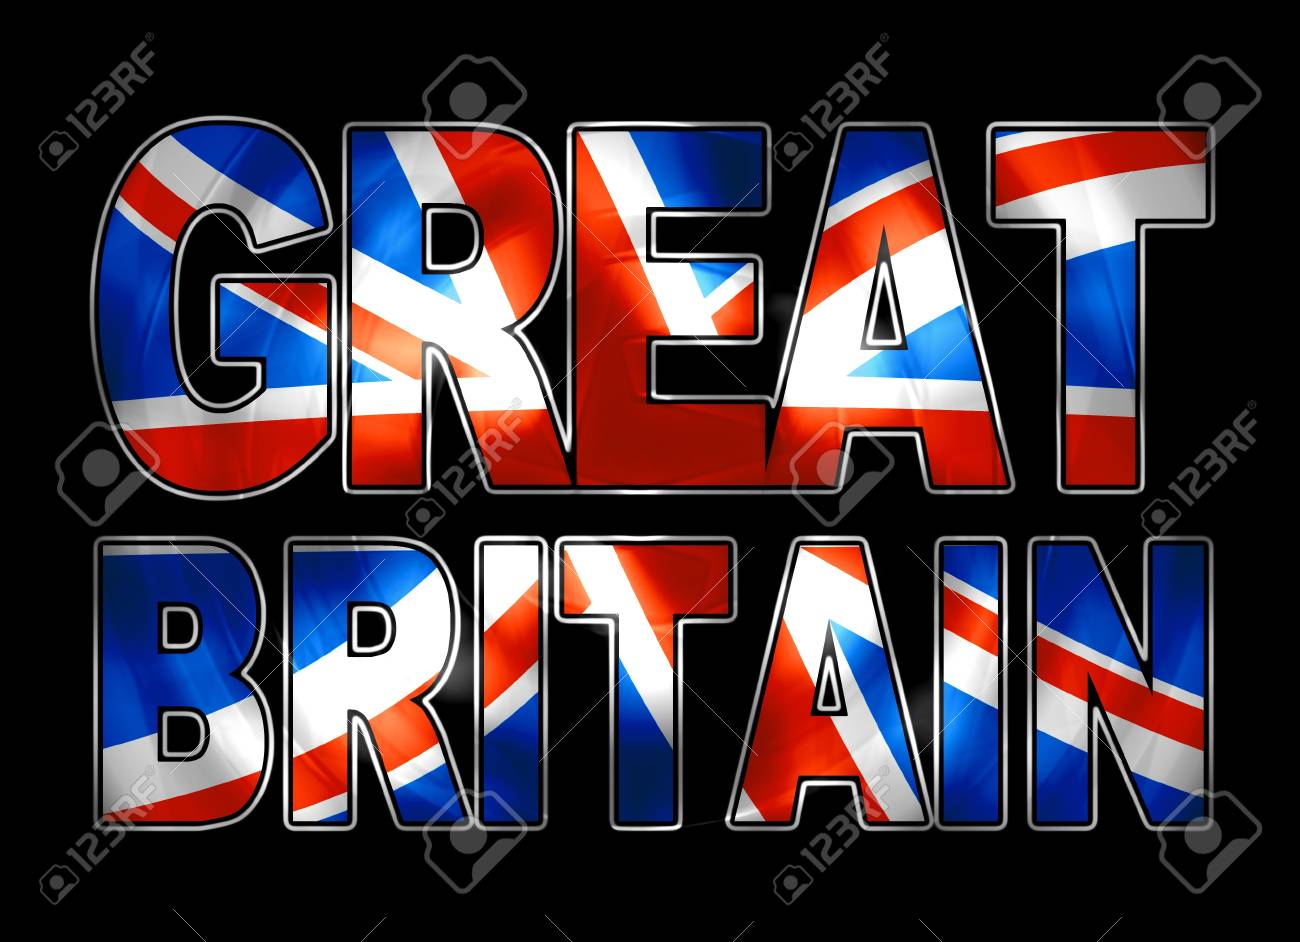 great britain vibrant Stock Photo - 10818105